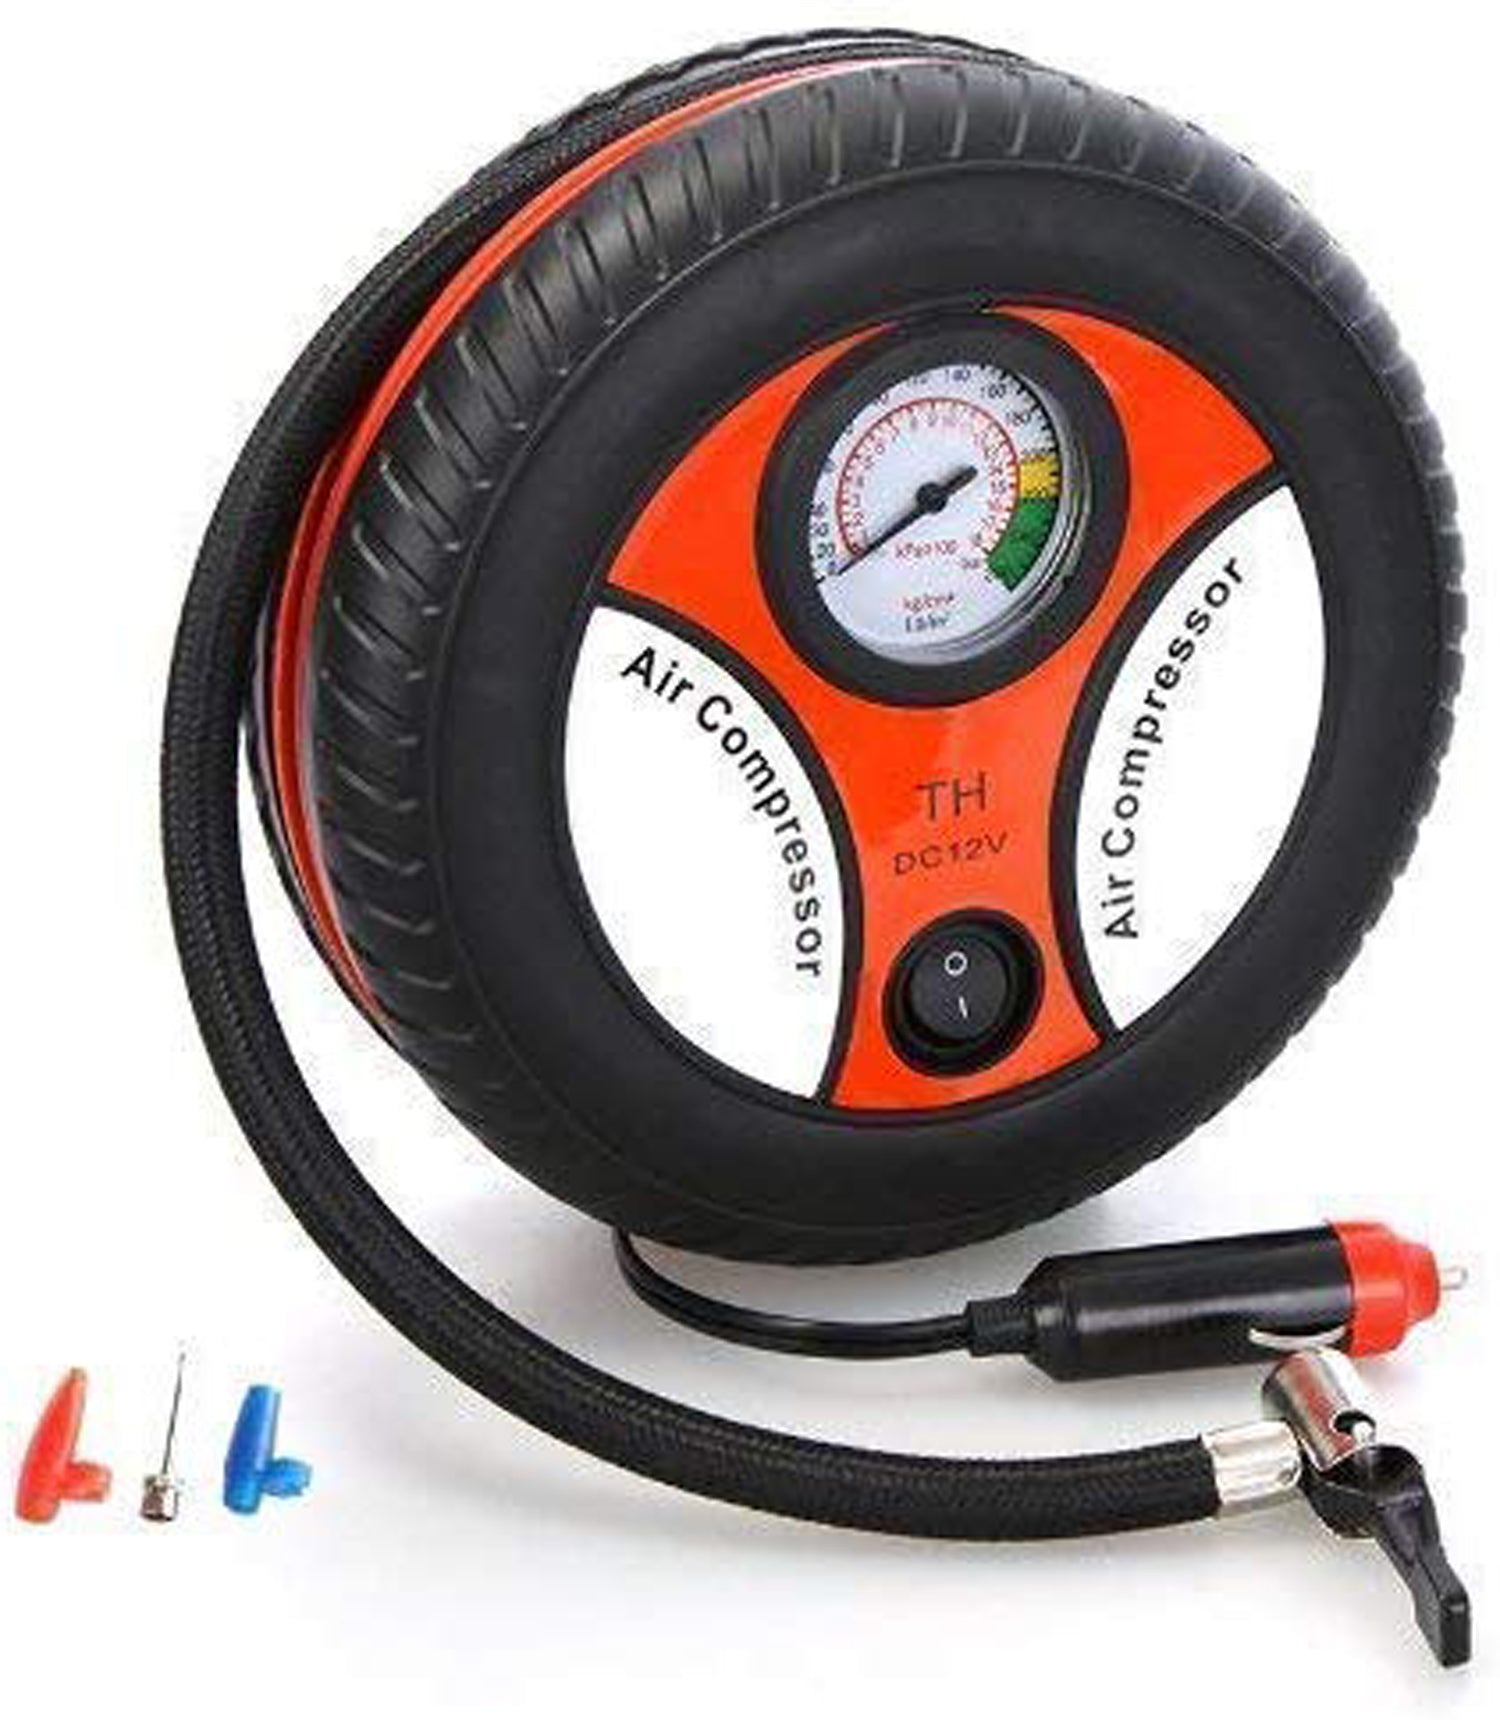 Car Air Compressor Pump - DC 12V